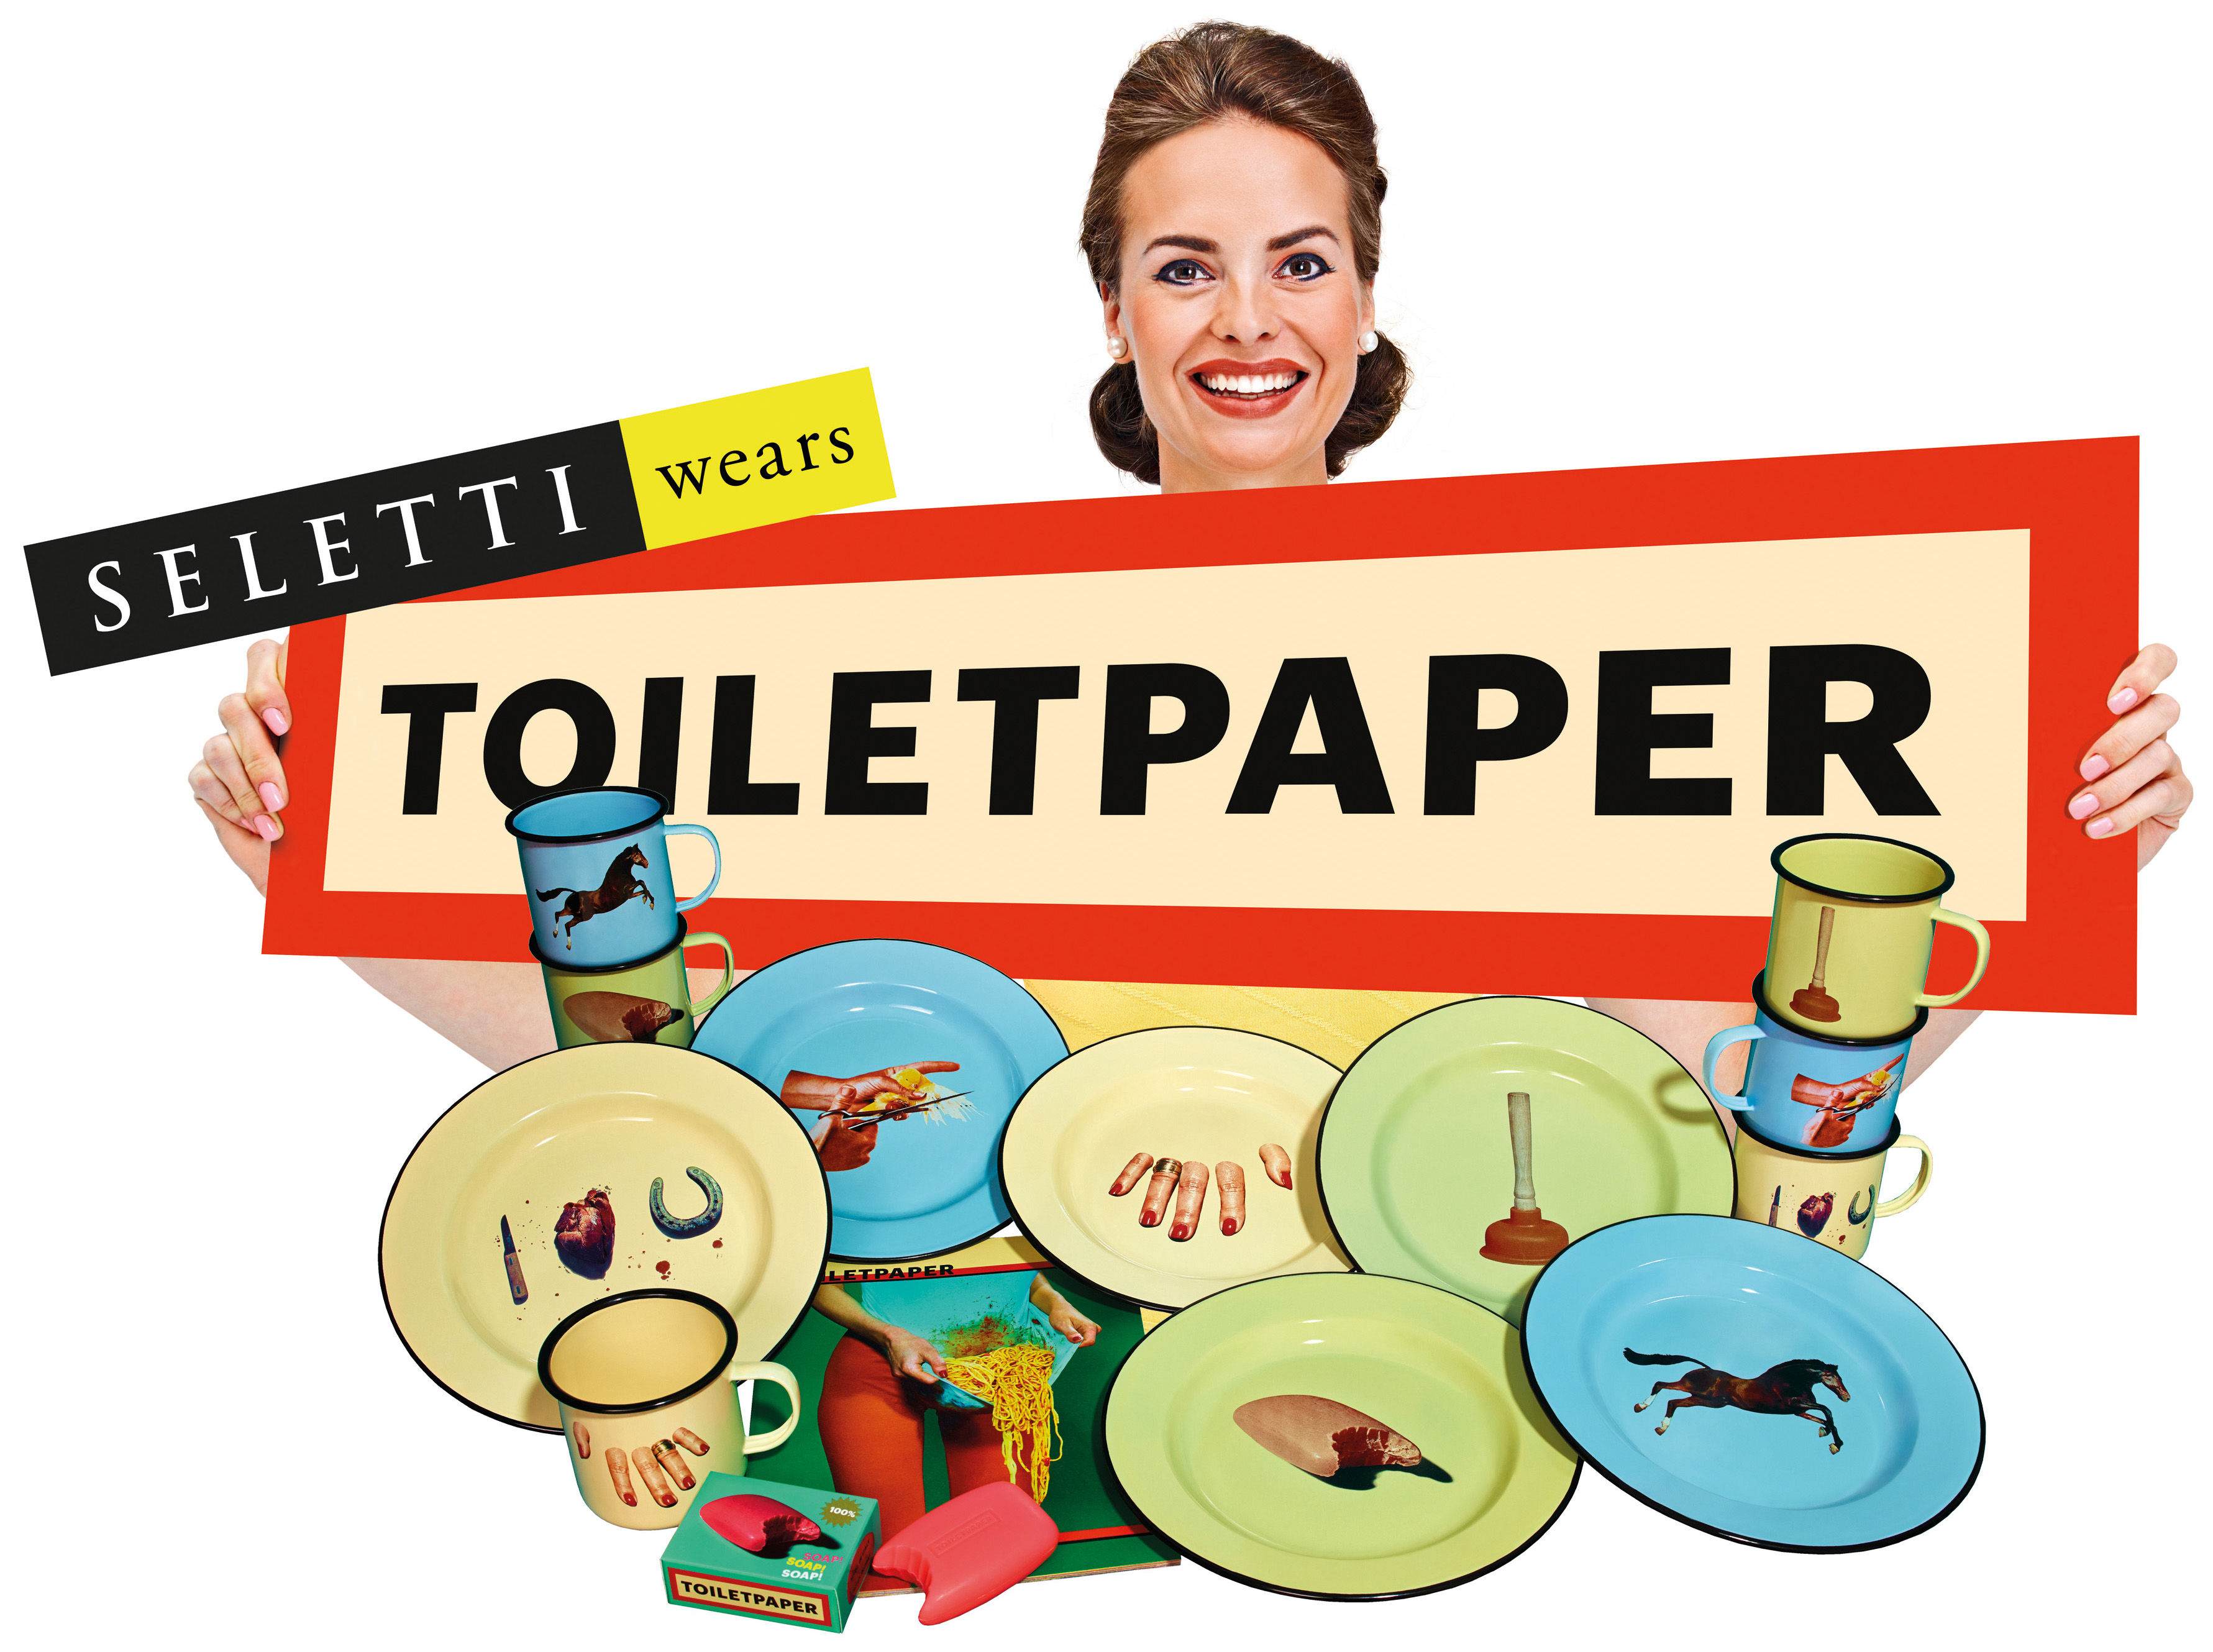 assiette frog Toilet paper by seletti